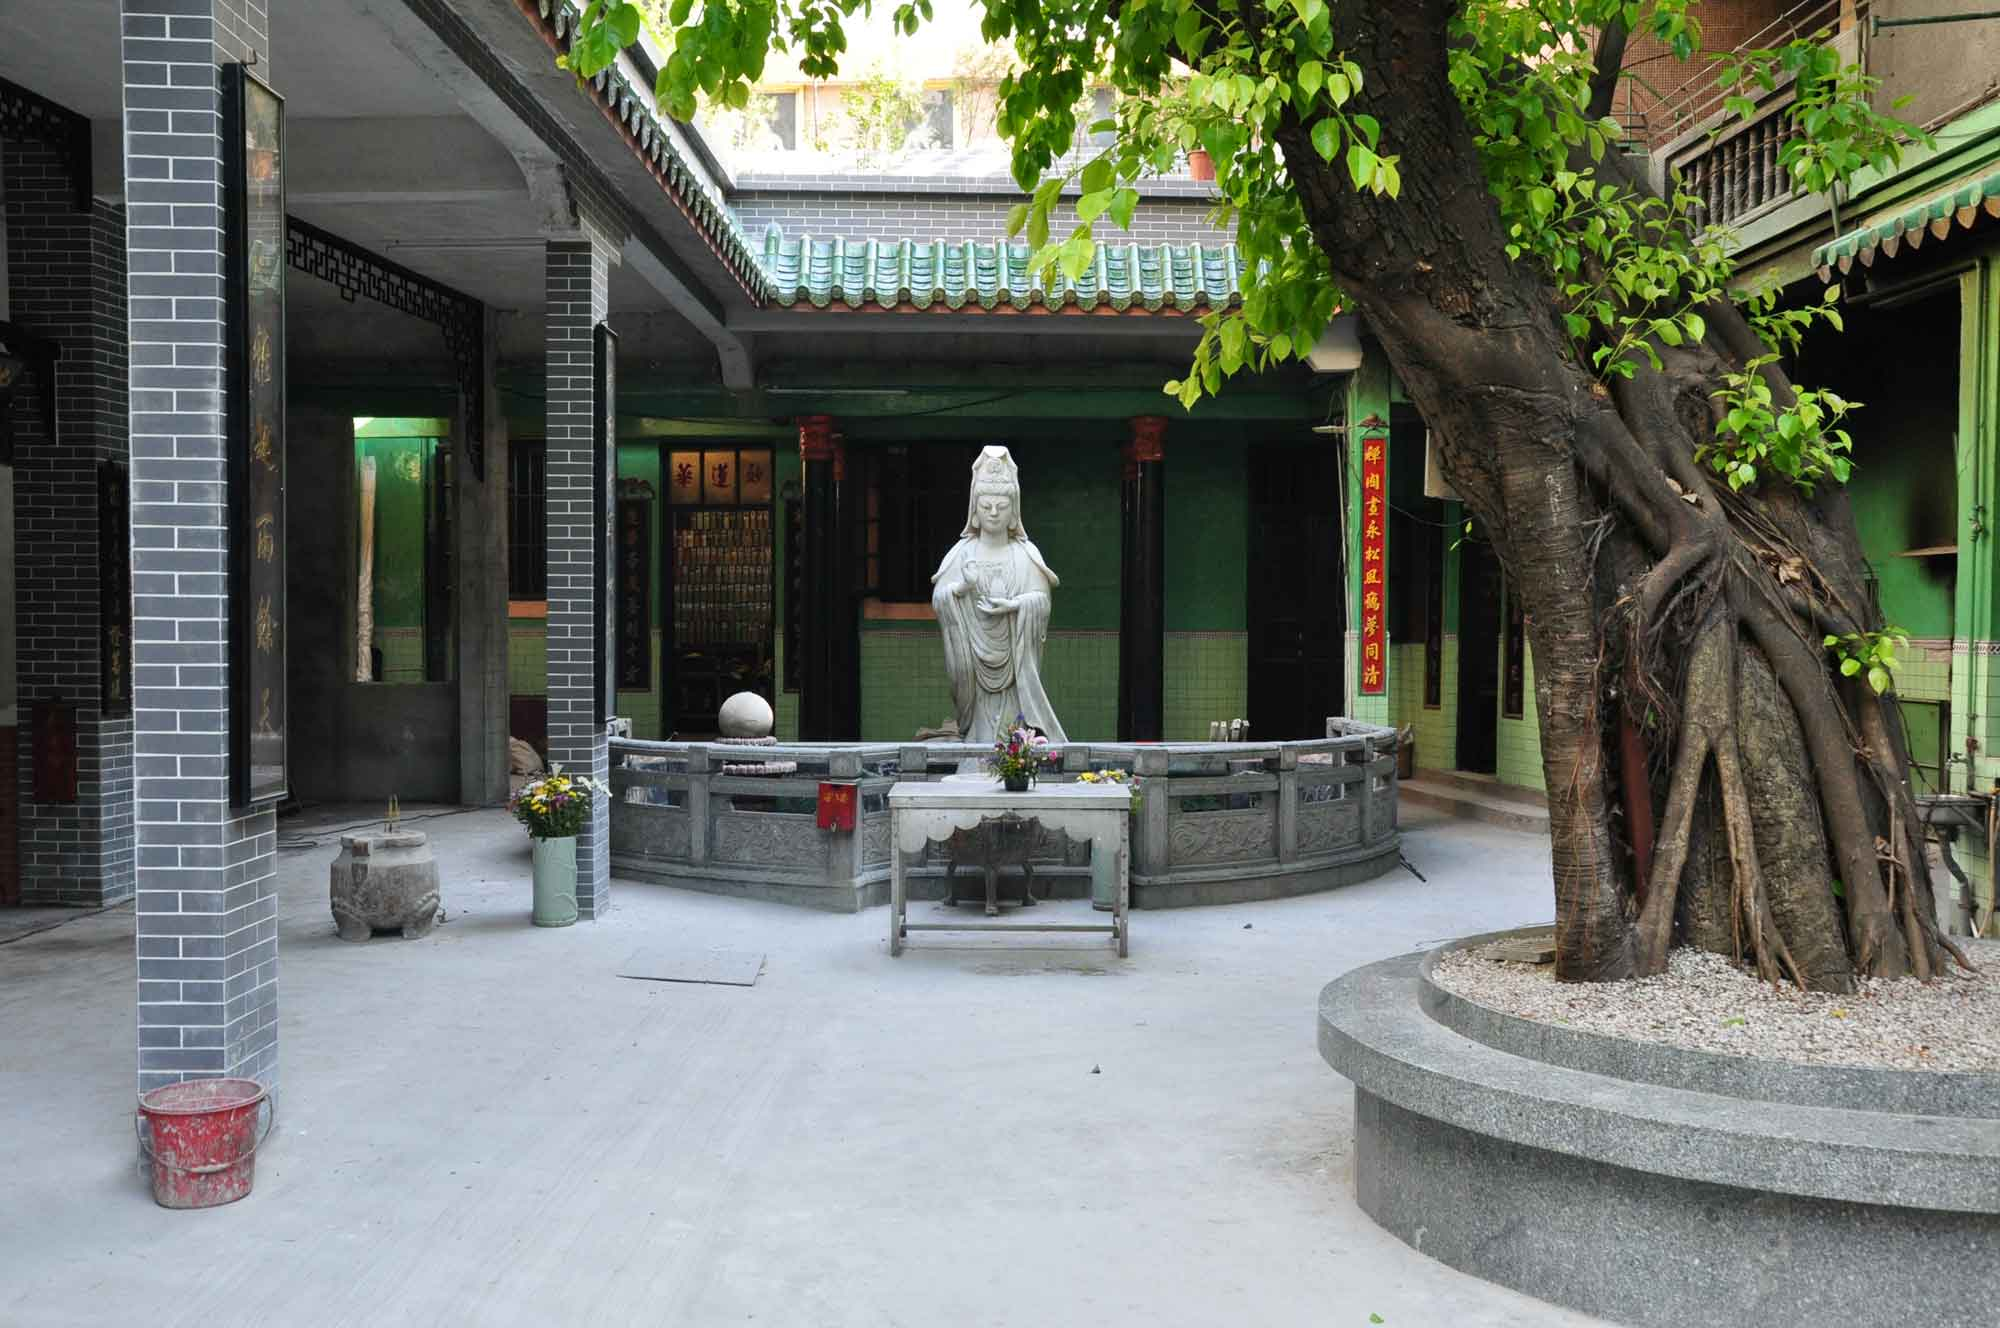 Temple of Bamboo inner courtyard